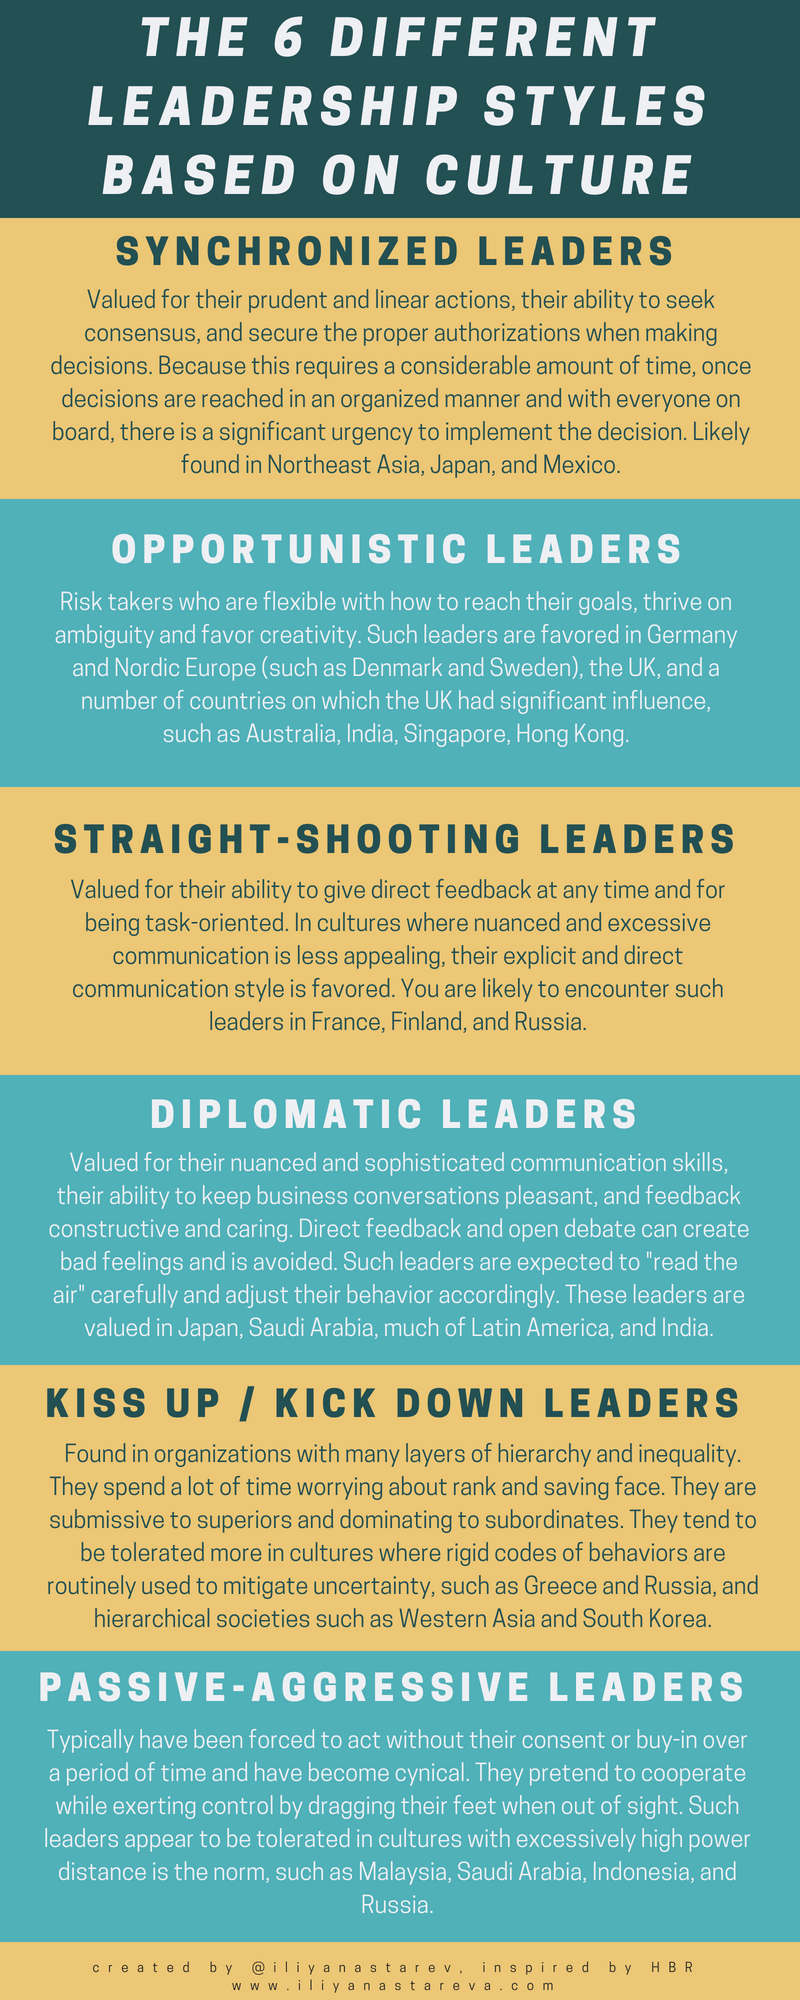 The 6 Different Leadership Styles Based on Culture [Infographic]